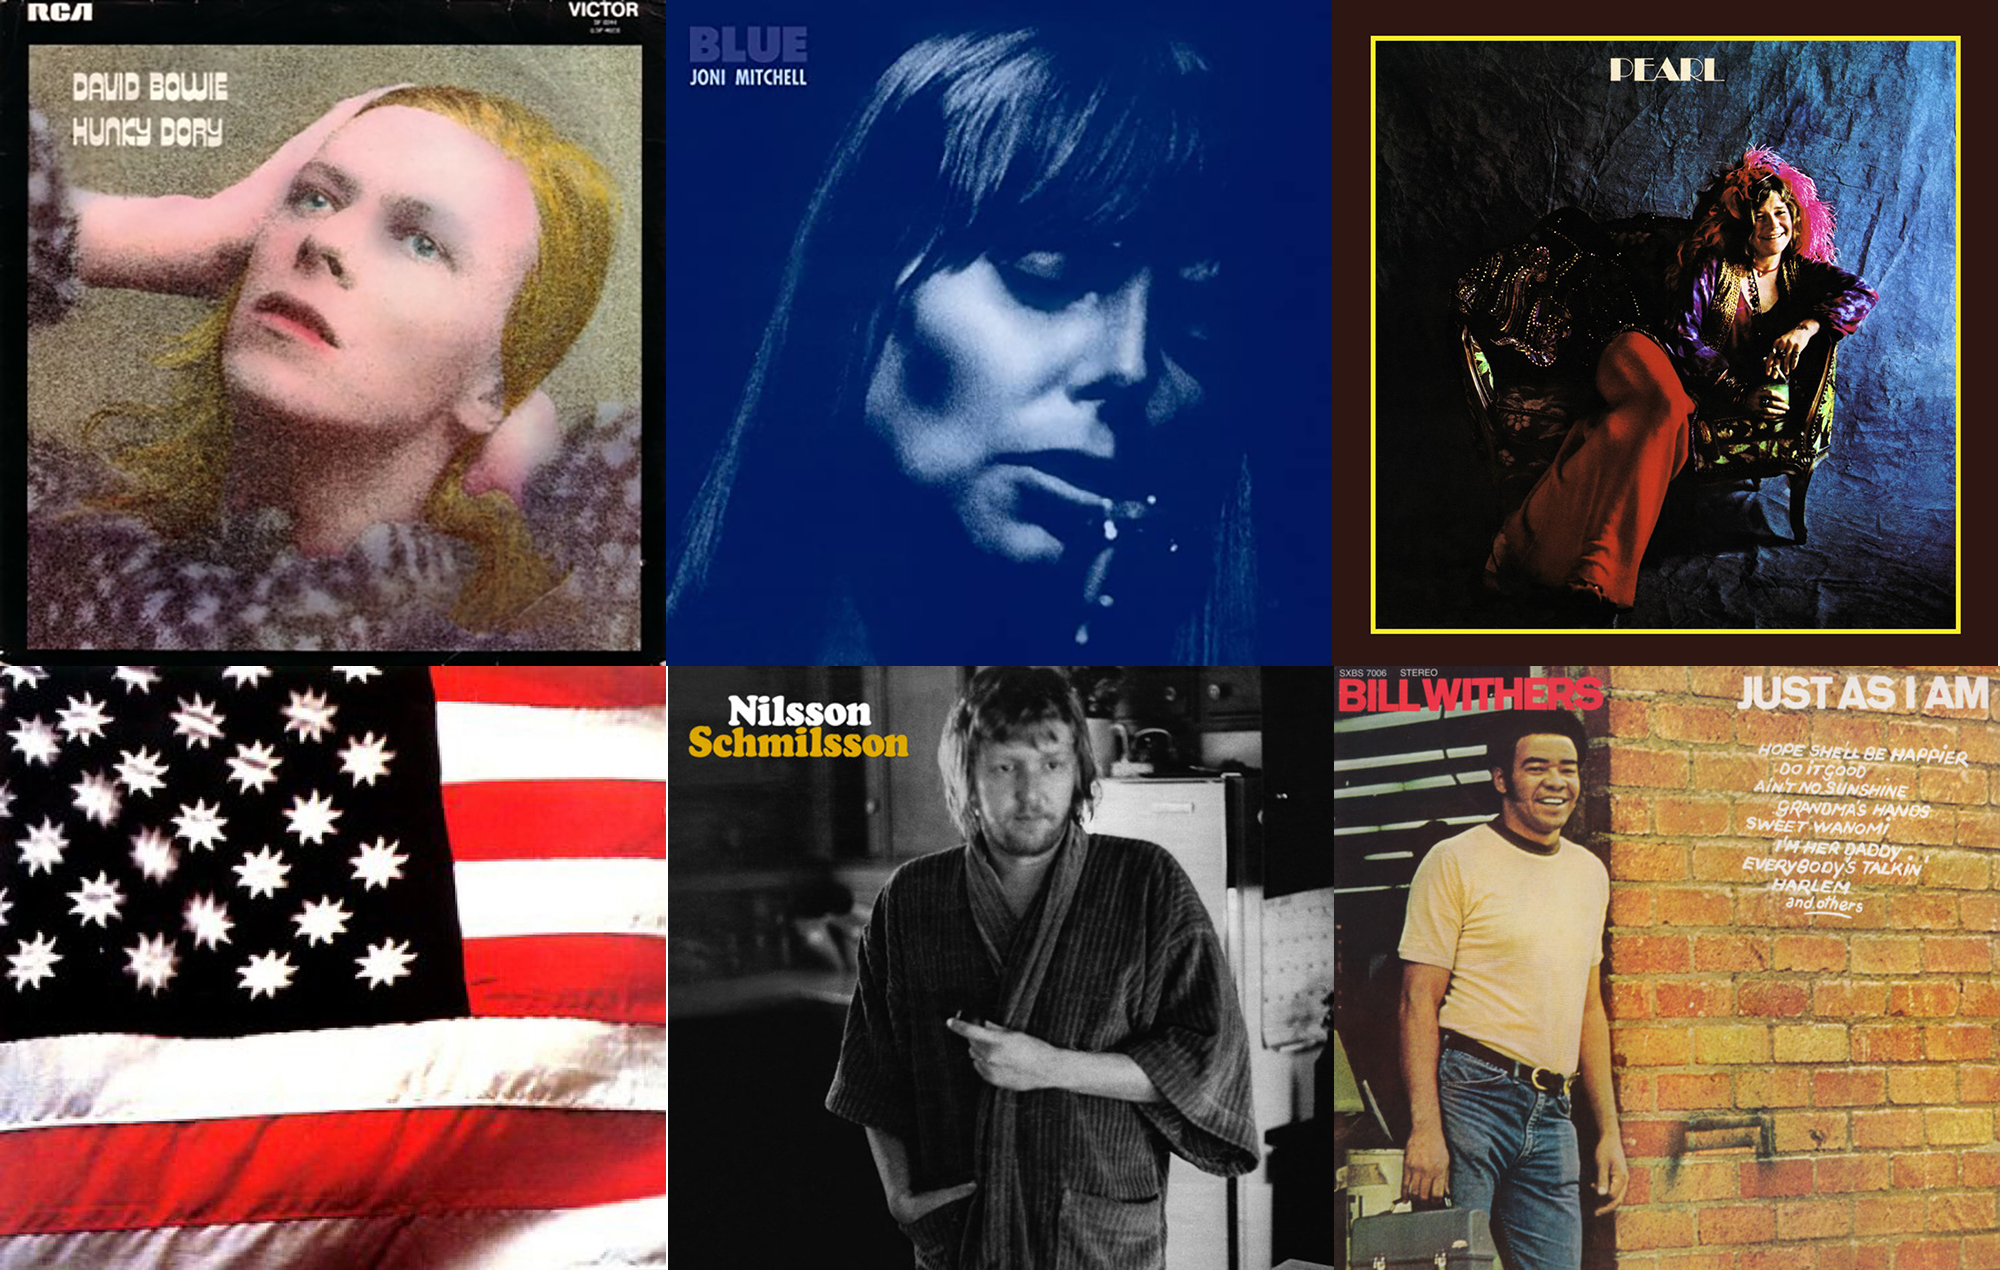 All of these classic albums turn 50 this year